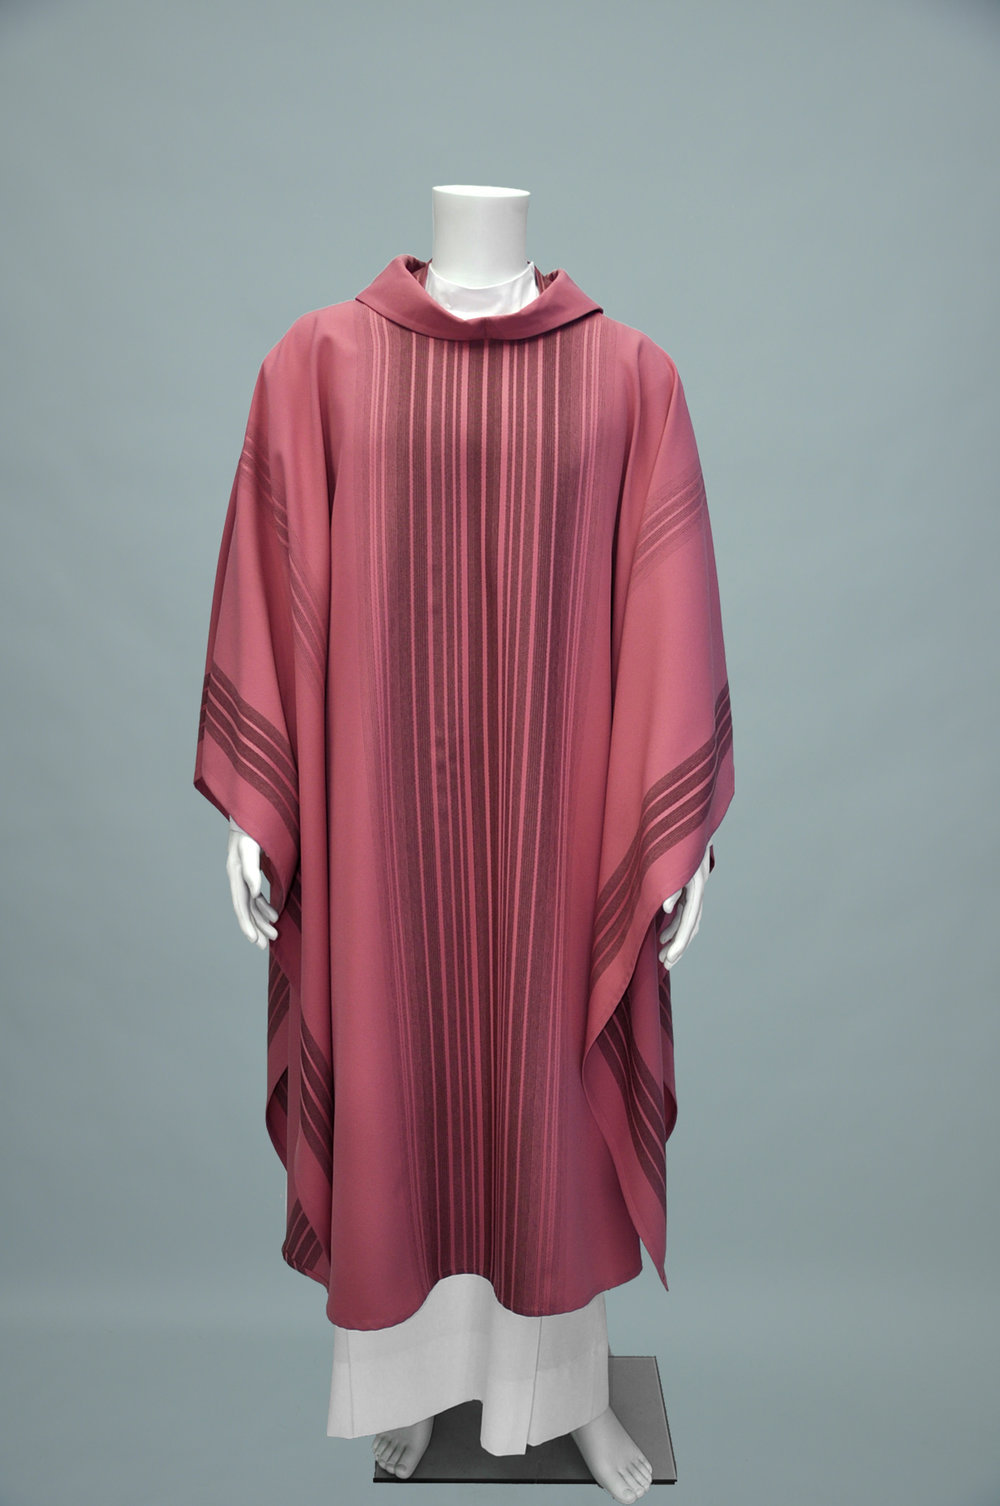 Mone Chasuble & Stole rose.jpg